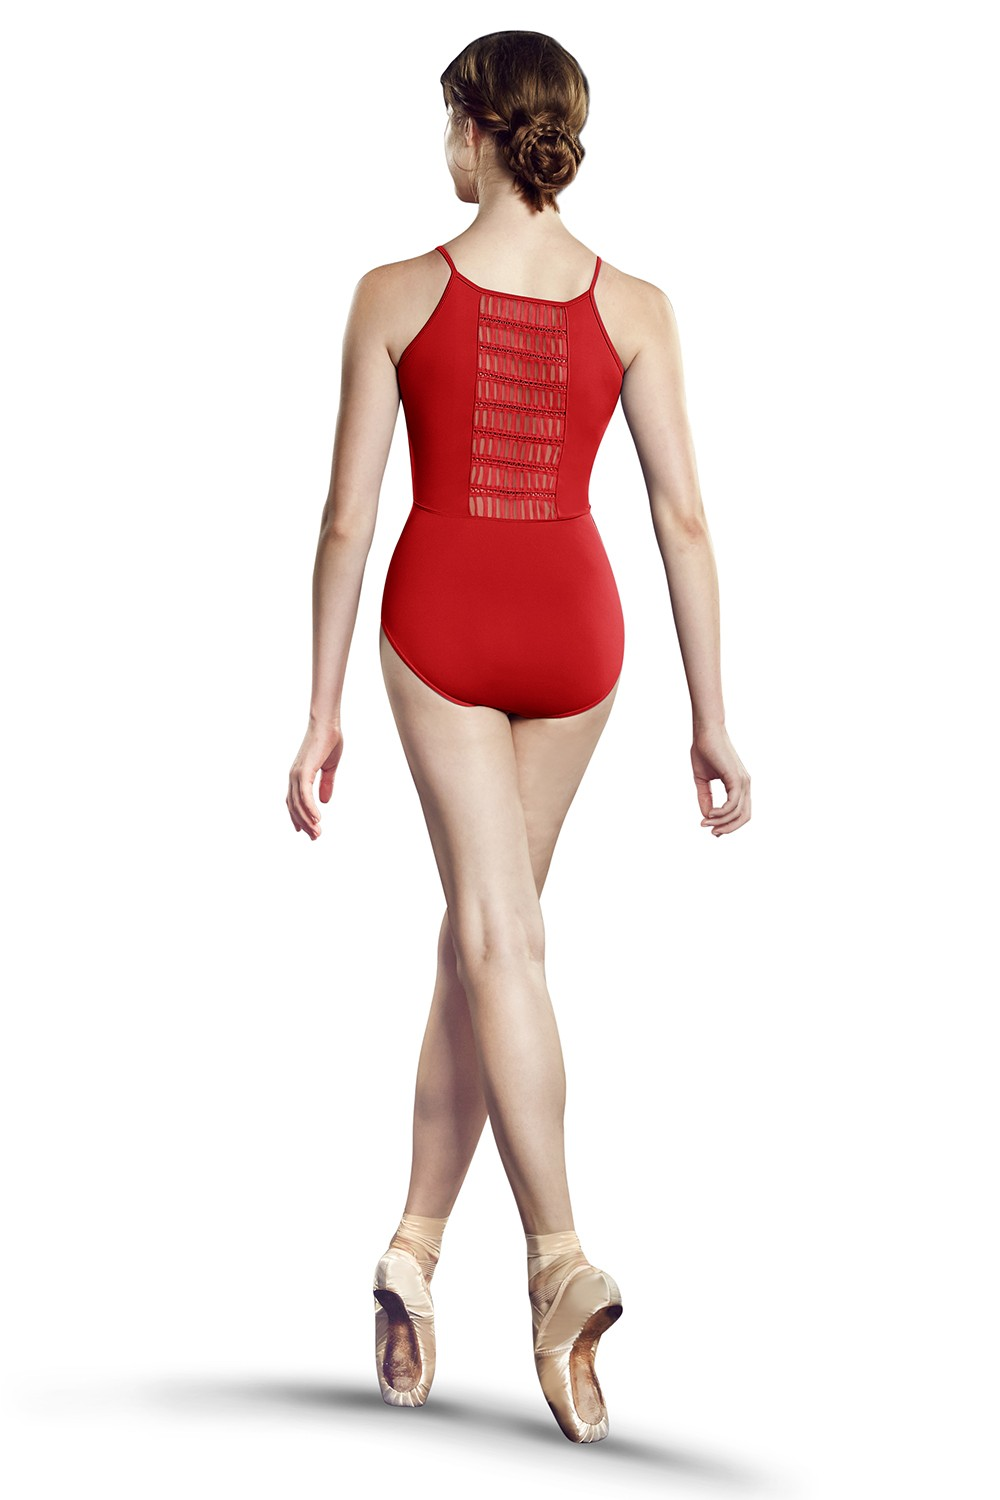 Z Elastic Camisole Leotard Women's Dance Leotards